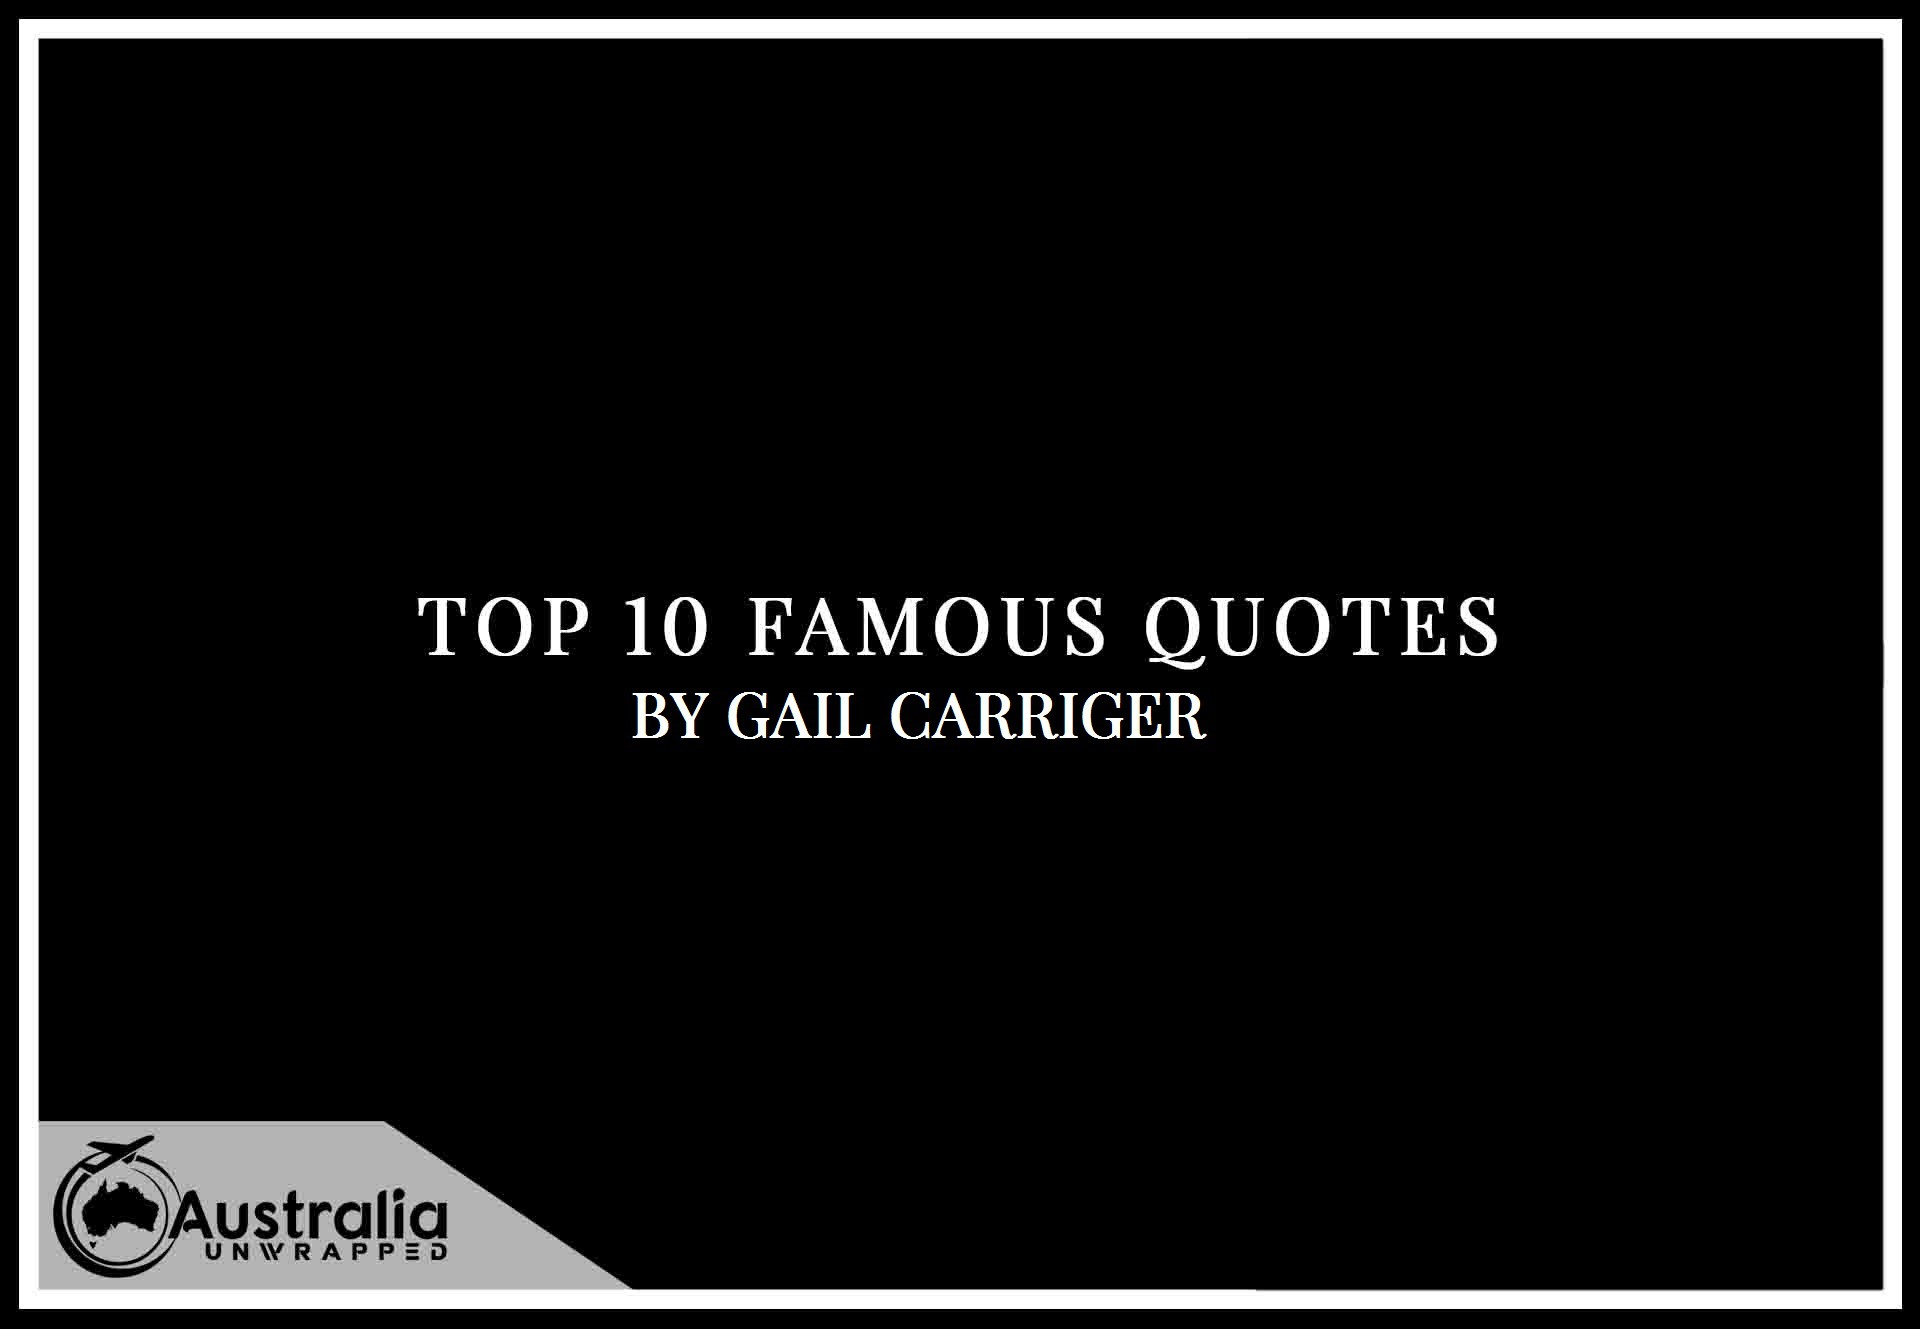 Gail Carriger's Top 10 Popular and Famous Quotes